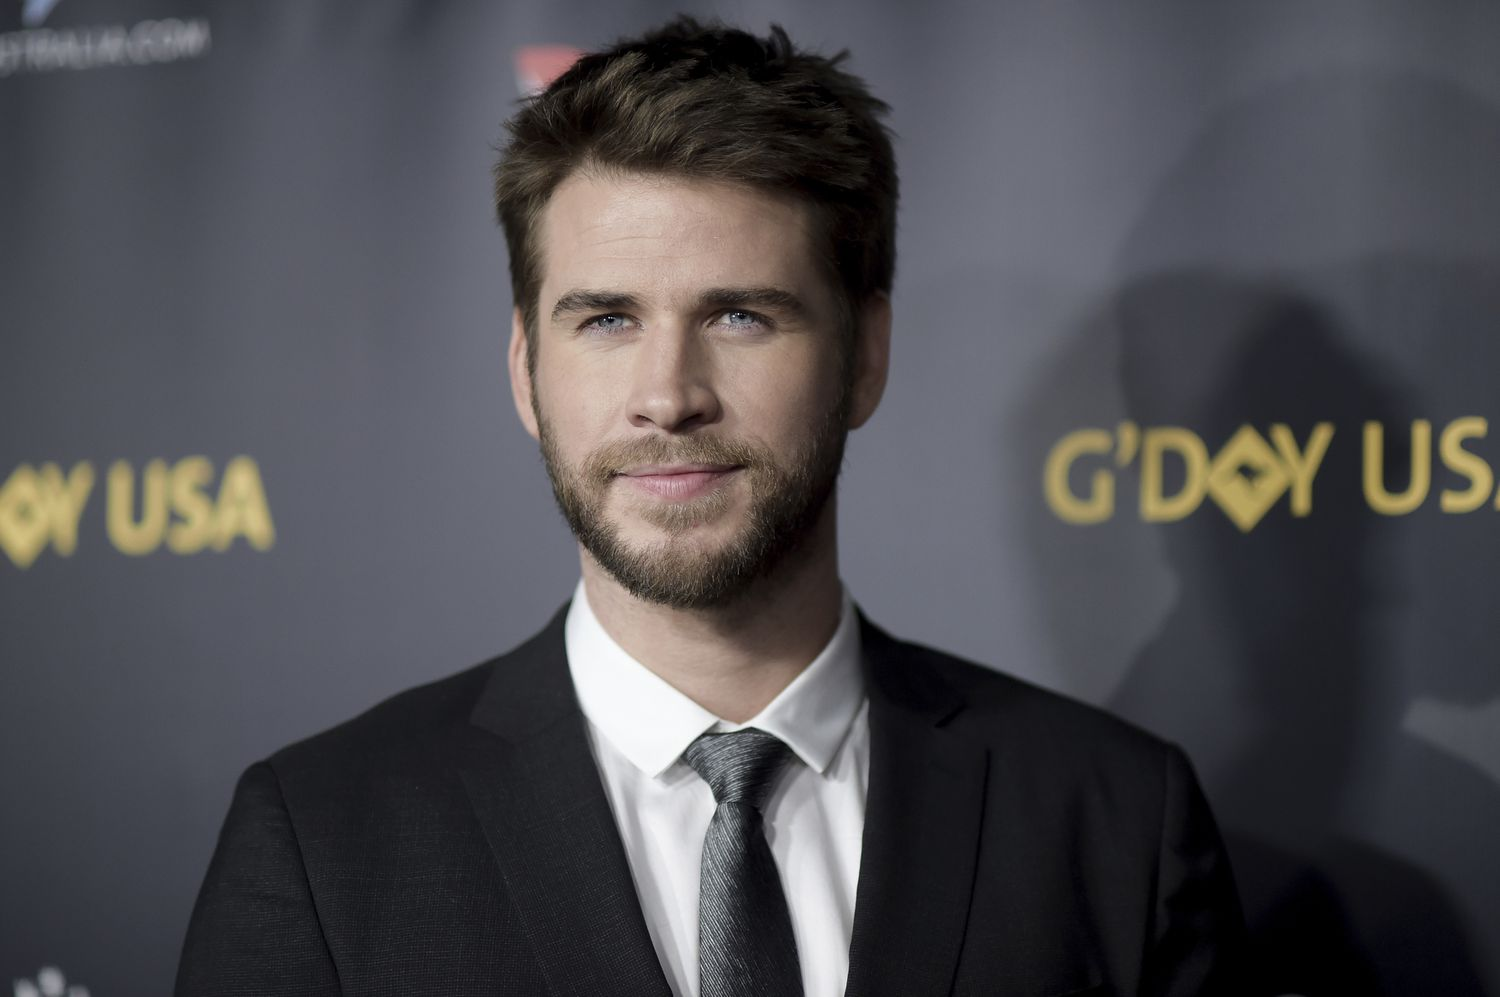 Liam Hemsworth à Culver City (Californie, États-Unis), en 2019.